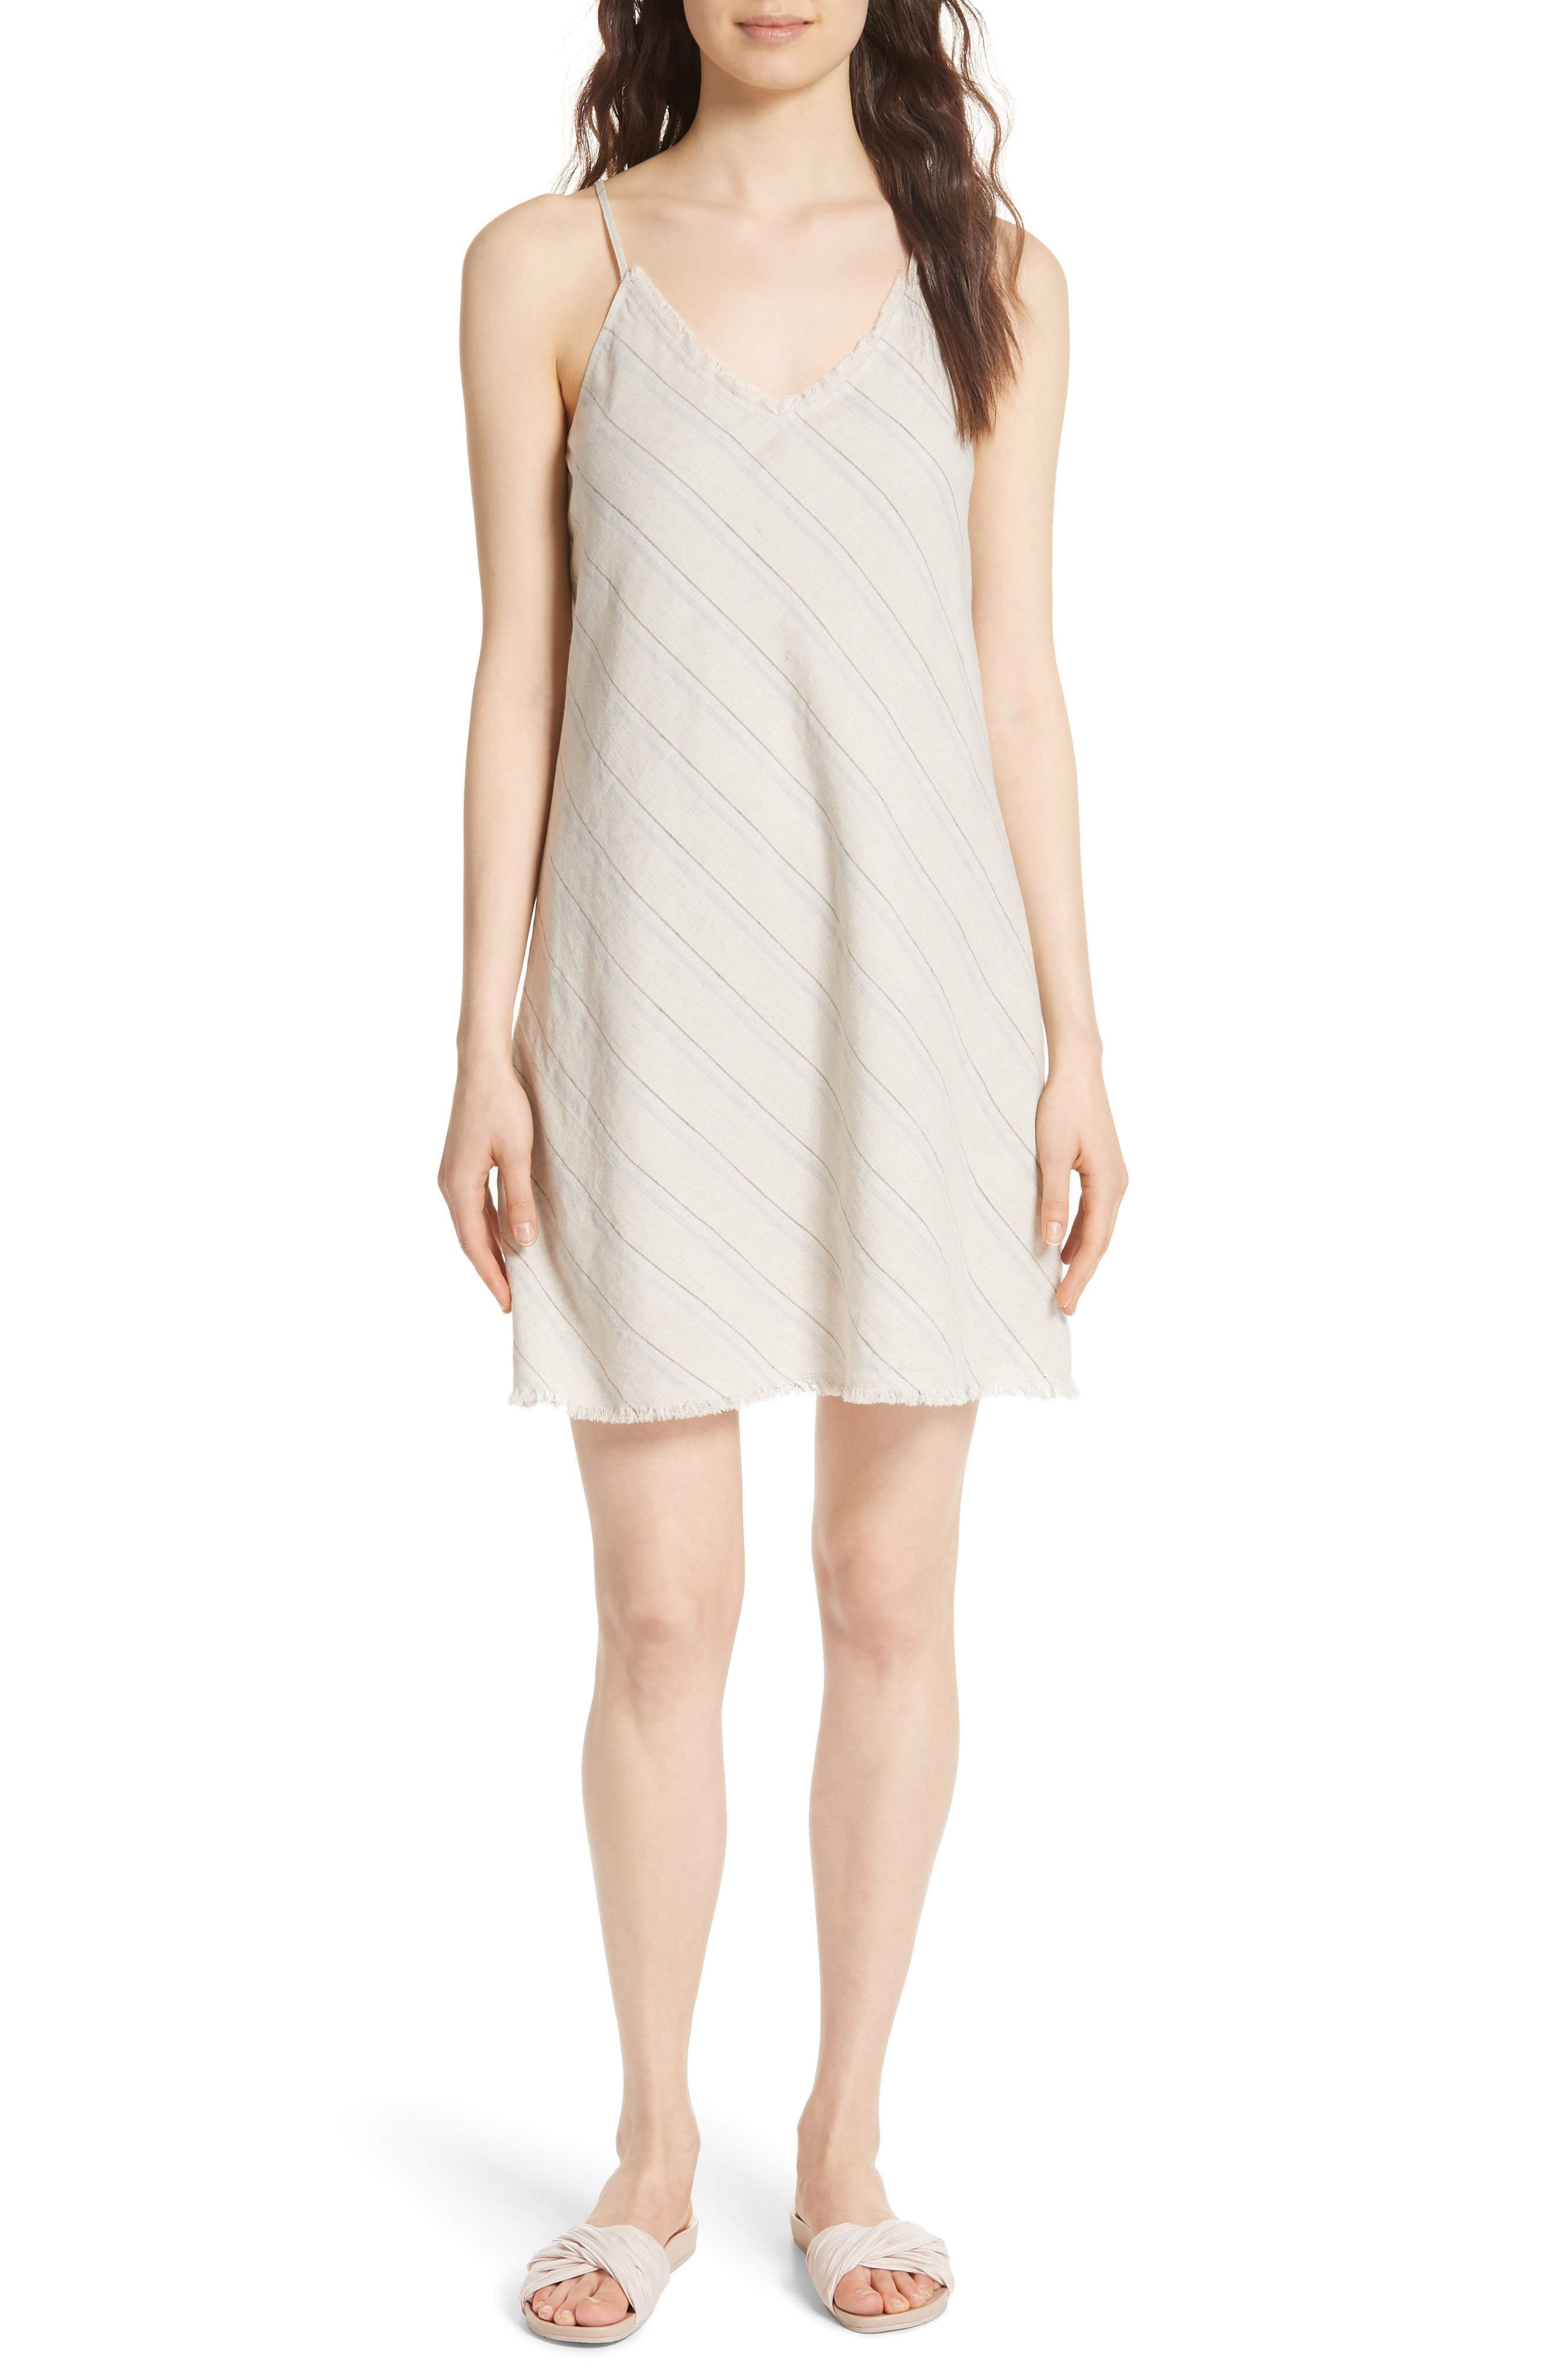 Atm Anthony Thomas Melillo Stripe Shift Dress, Beige